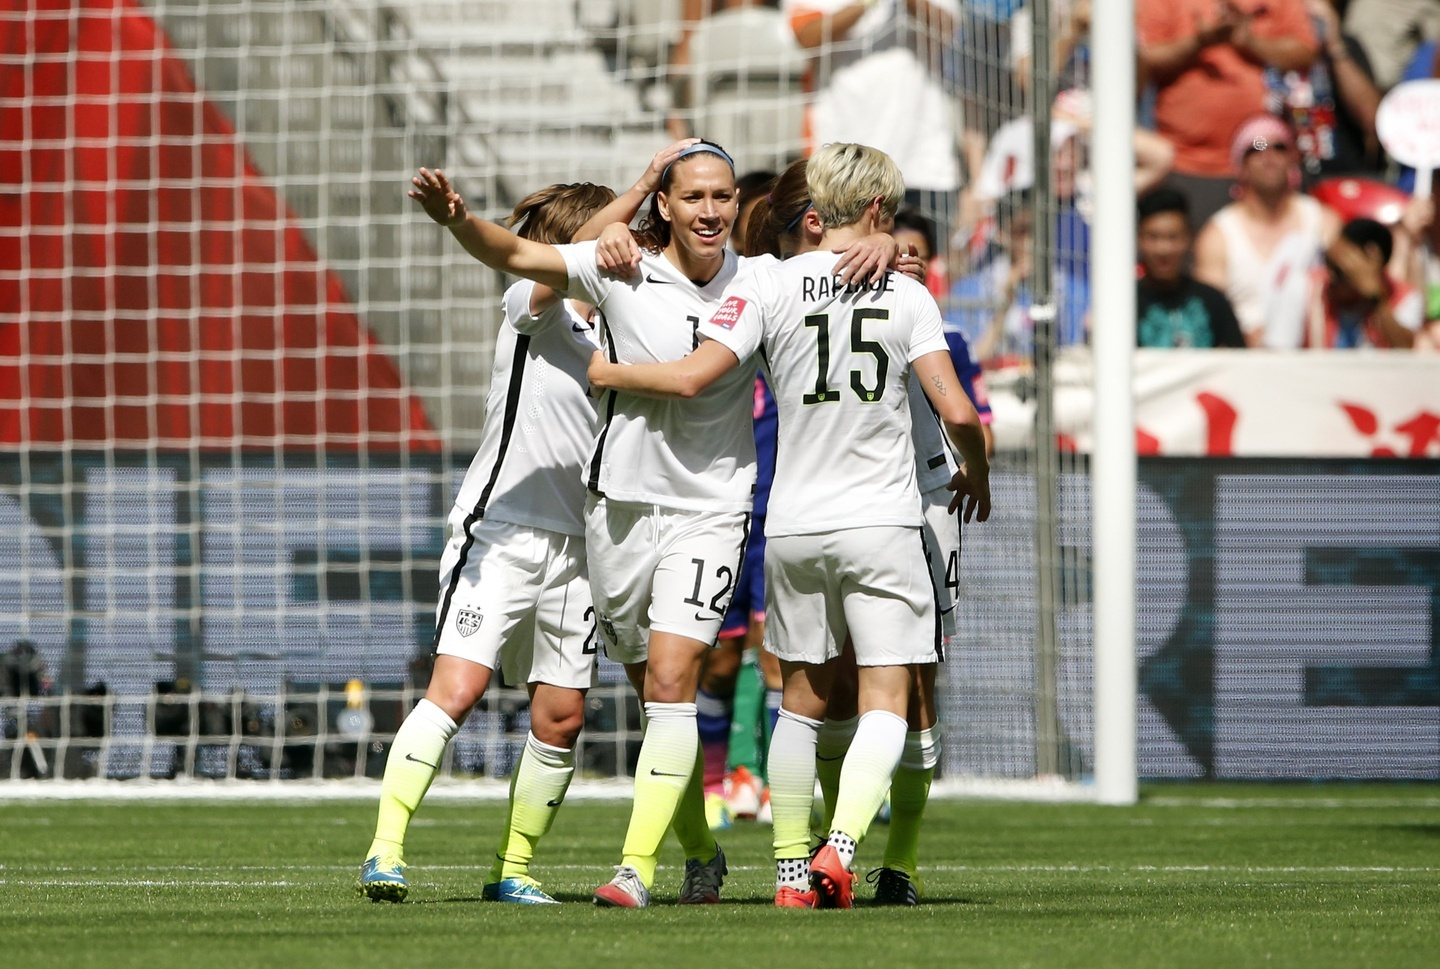 Caught Between A Rock A Hard Place And Several Teammates That Love Her Dearly Photo By Michael Chow Usa Today Sports